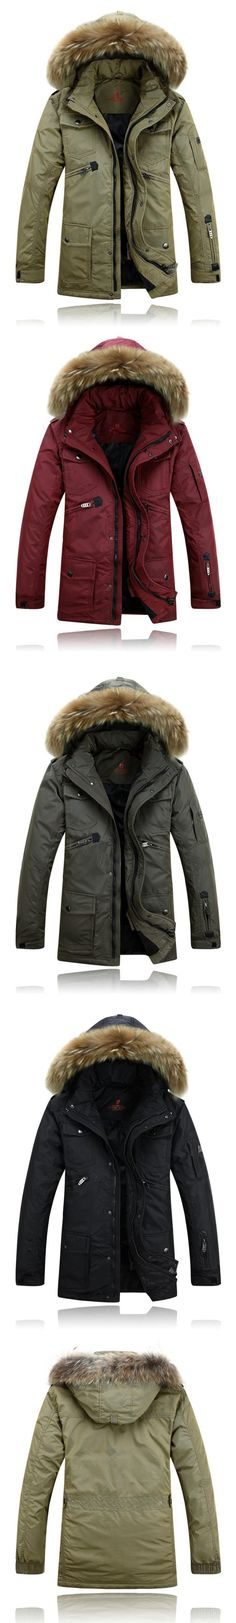 Wholesale cheap men outwear coats online, Liner Detachable   - Find best  Men Winter Jacket Duck Down Parkas Fur Collar Thick Winter Coat Hooded Outdoor Outwear Windproof Waterproof Liner Detachable at discount prices from Chinese Down & Parkas supplier - bestselling8899 on DHgate.com.